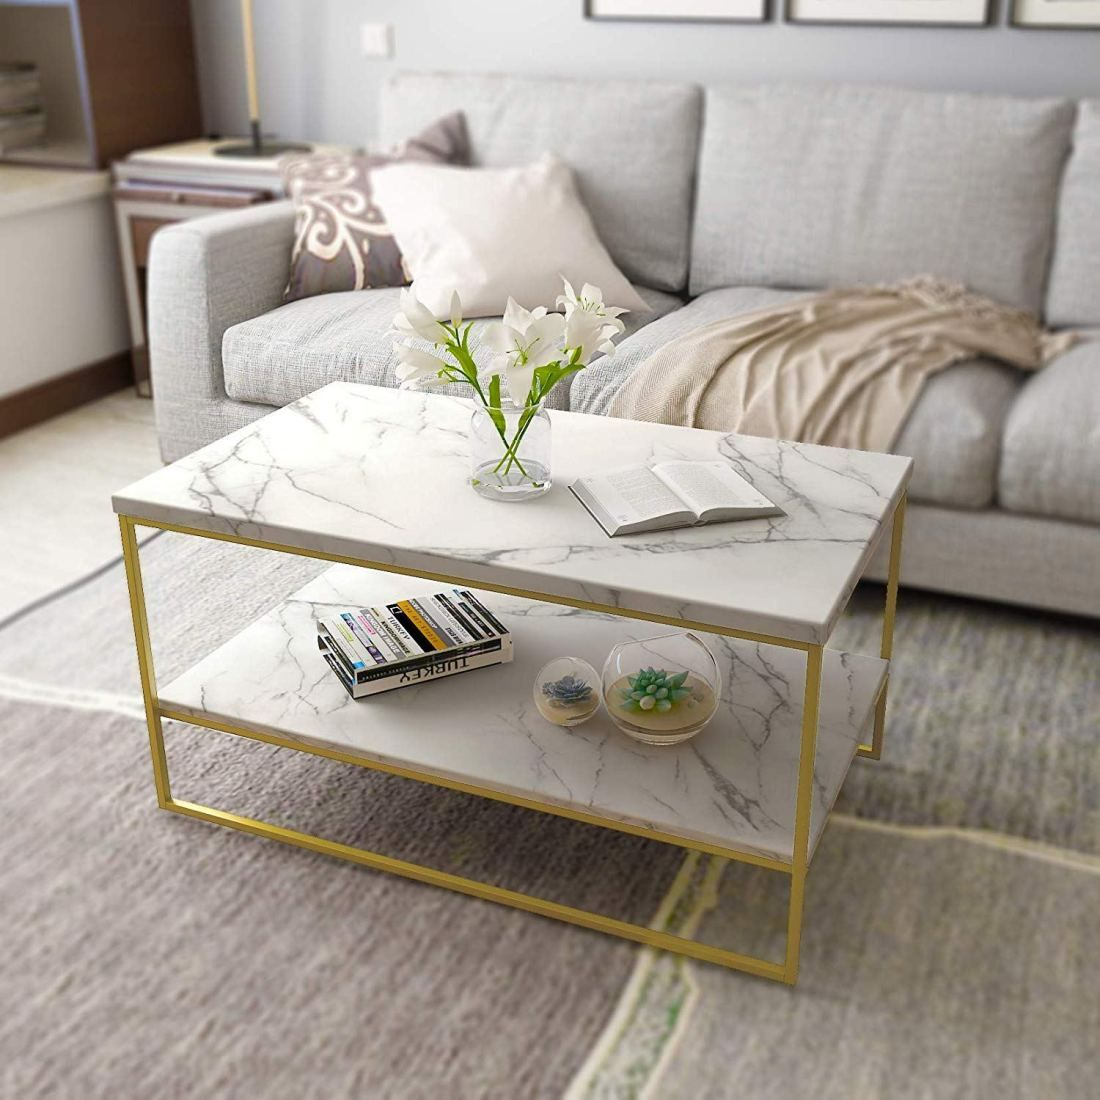 Budget Friendly Furniture That Is Perfect For Small Spaces City Chic Decor Living Room Table Coffee Table Marble Tables Living Room [ 1100 x 1100 Pixel ]